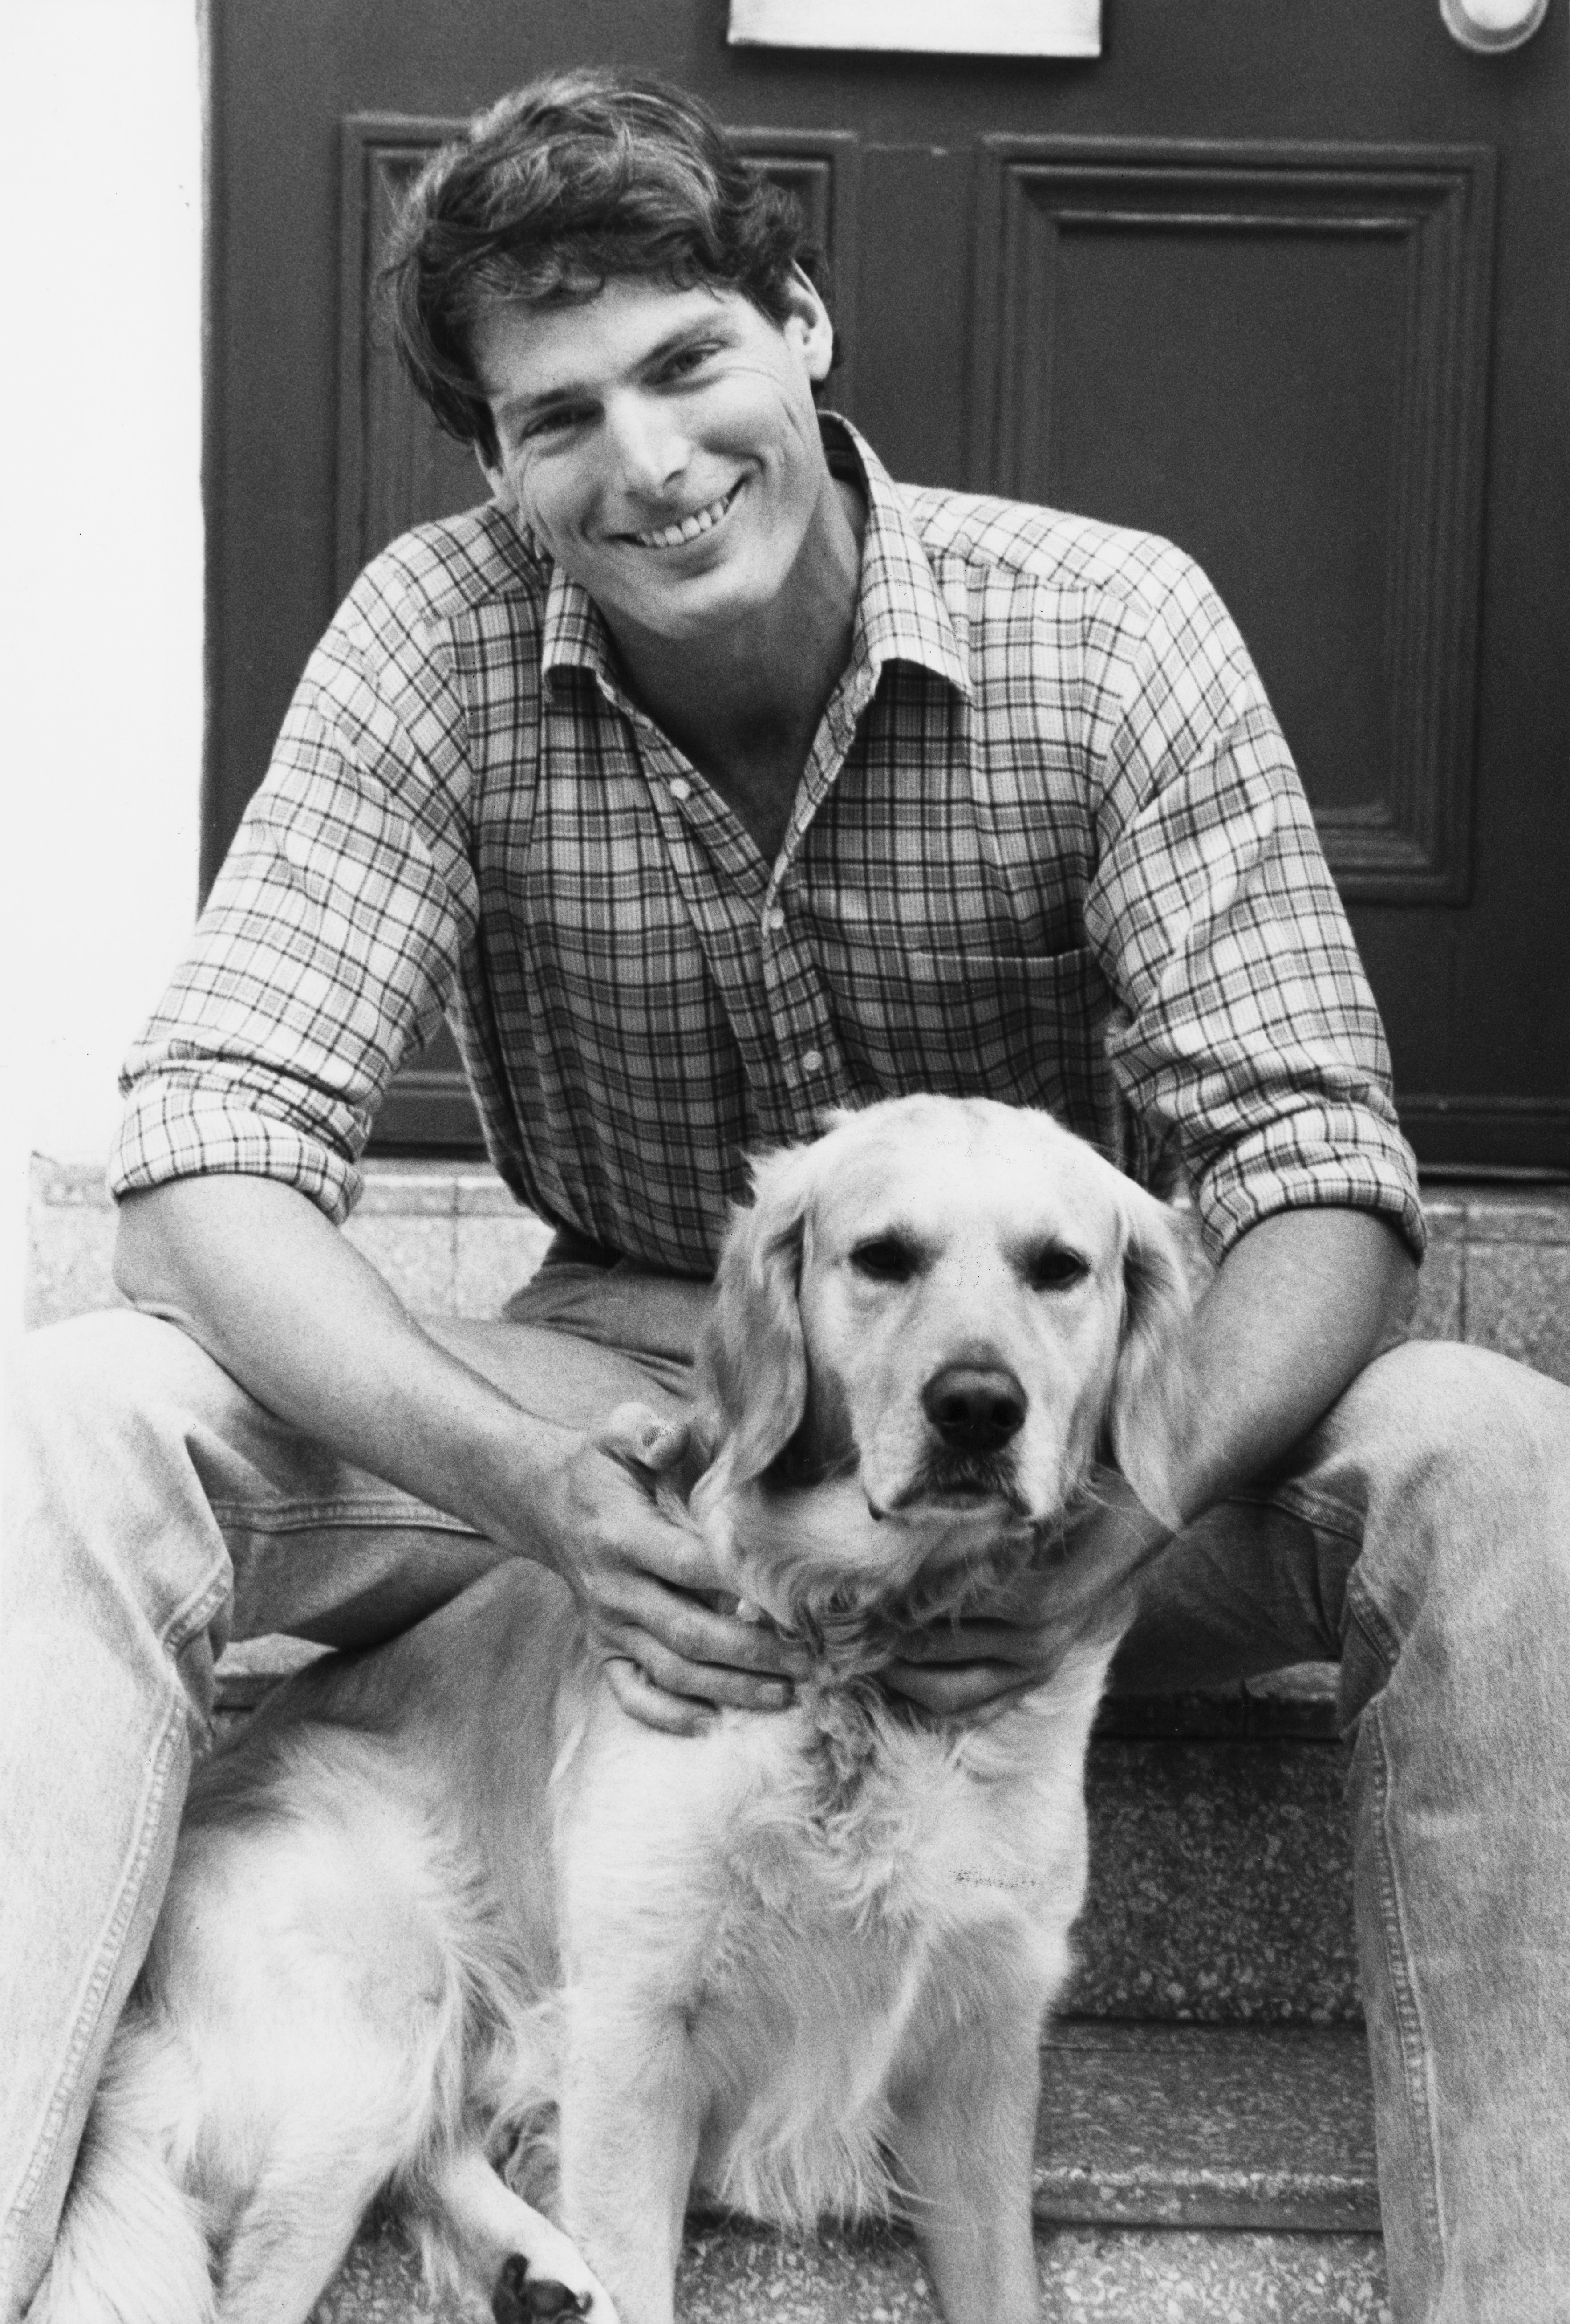 Young Chriss Reeve posing with dog, 1986 | Photo: Getty Images